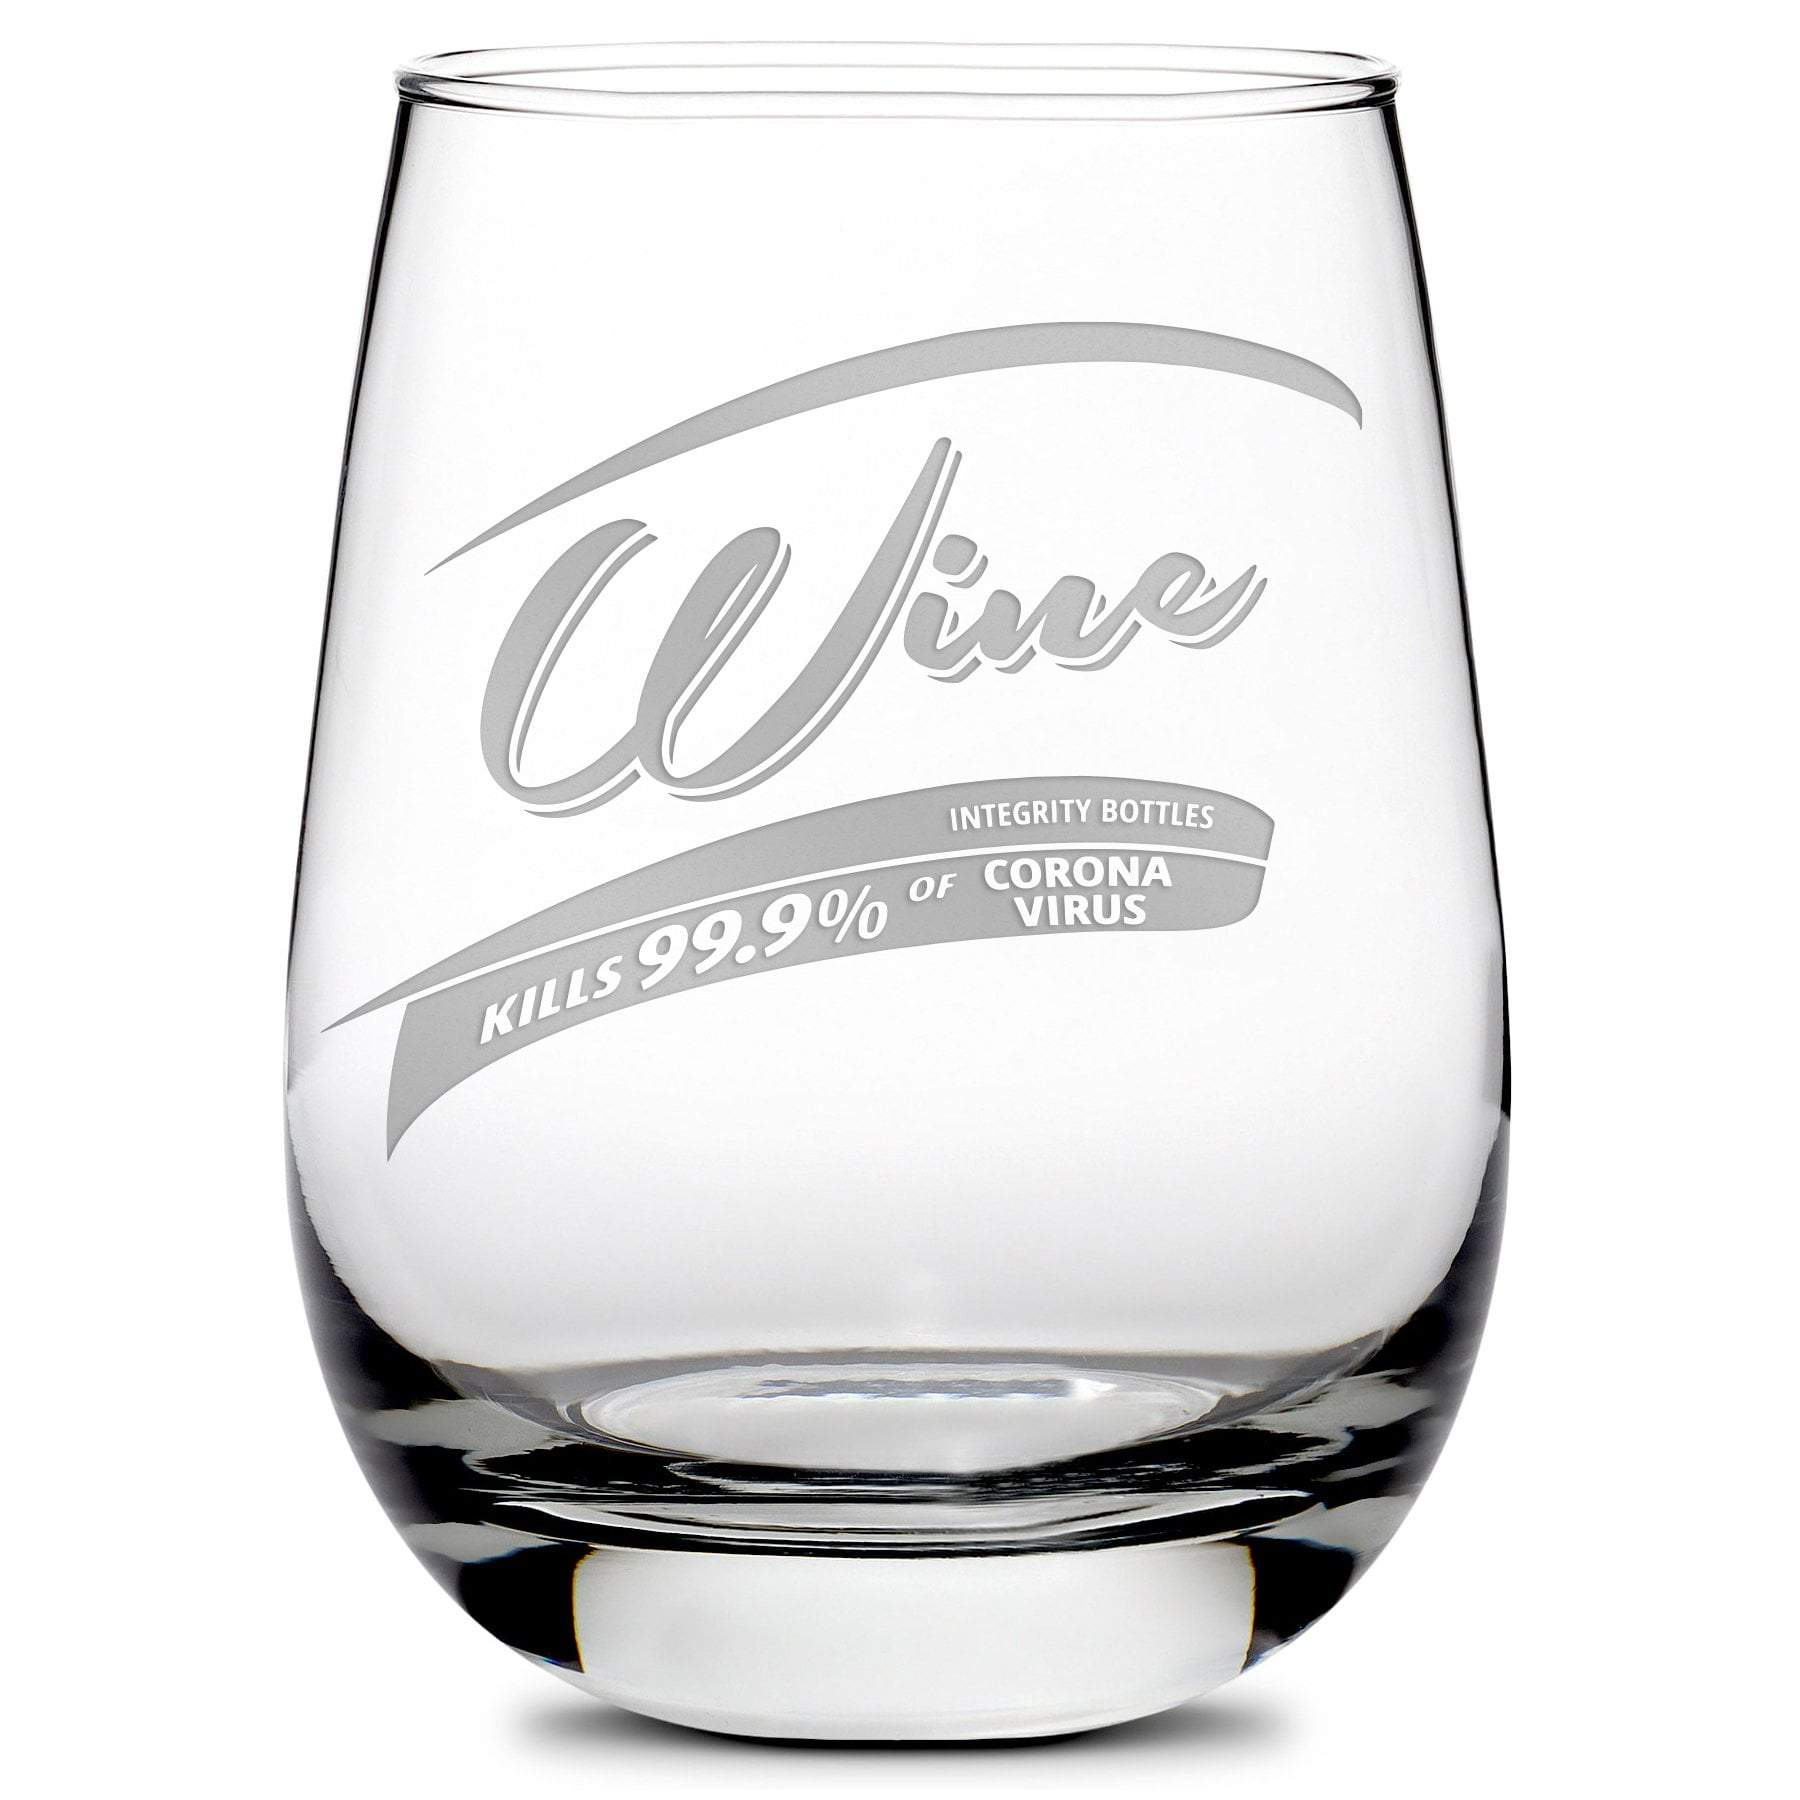 Premium Corona Virus Wine Glass - Hand-Etched COVID-19 Killer Drinking Glasses,  Made in USA, 11oz by Integrity Bottles